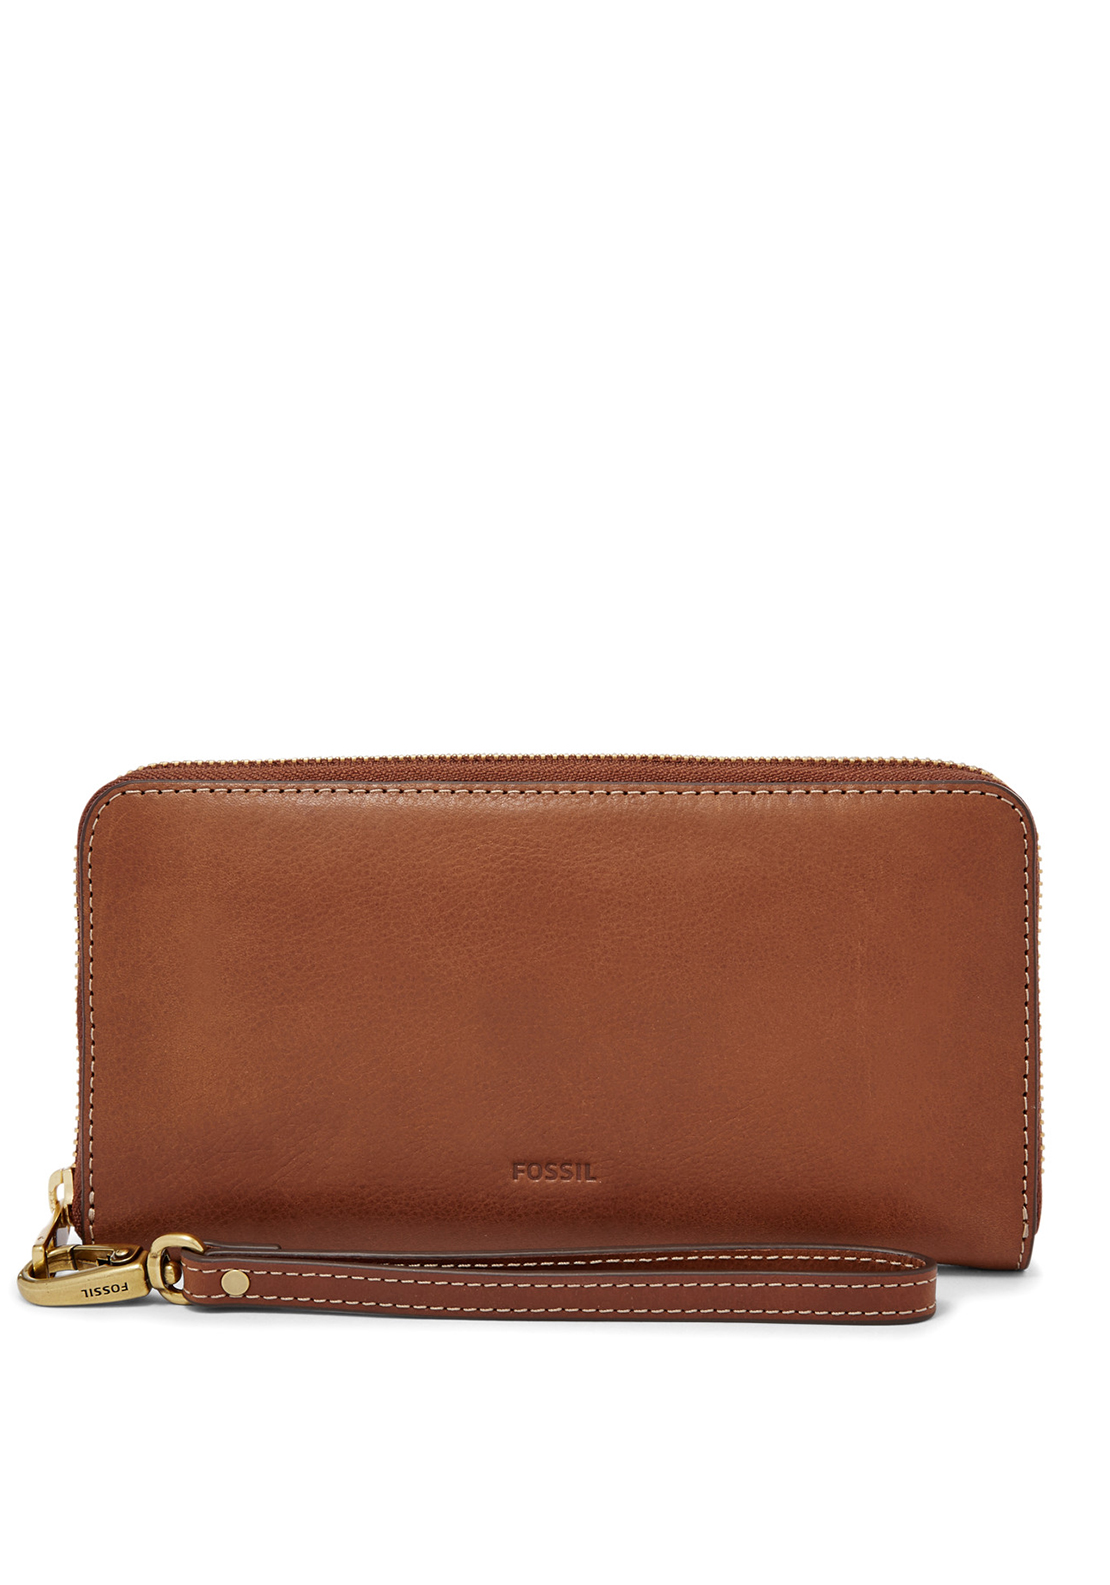 Fossil Emma Large Leather Zip Around Purse, Brown